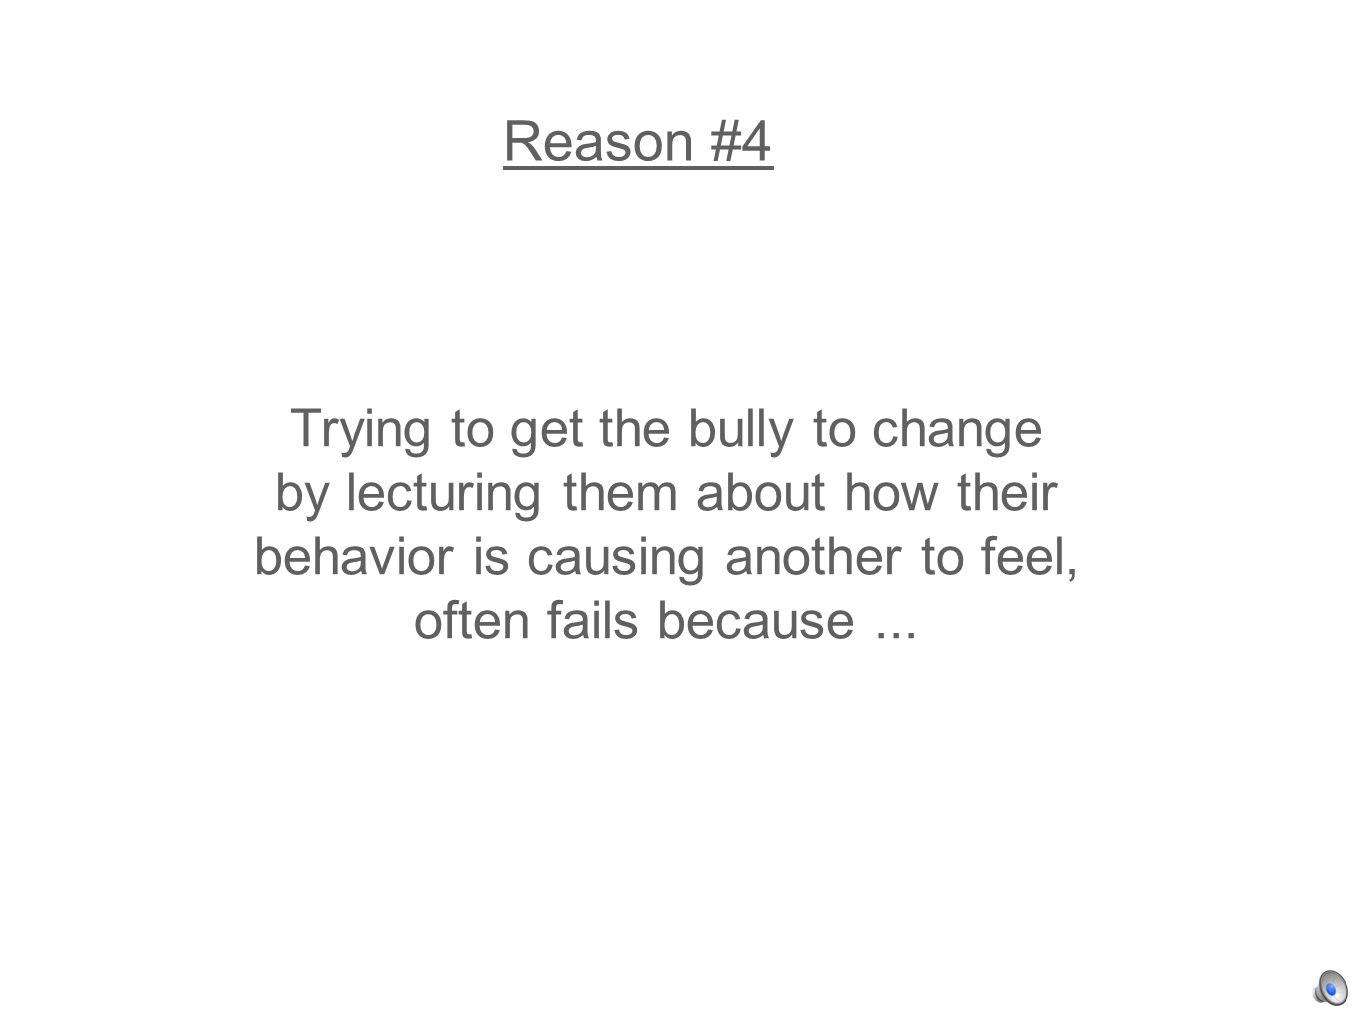 Reason #4 Trying to get the bully to change by lecturing them about how their behavior is causing another to feel, often fails because...